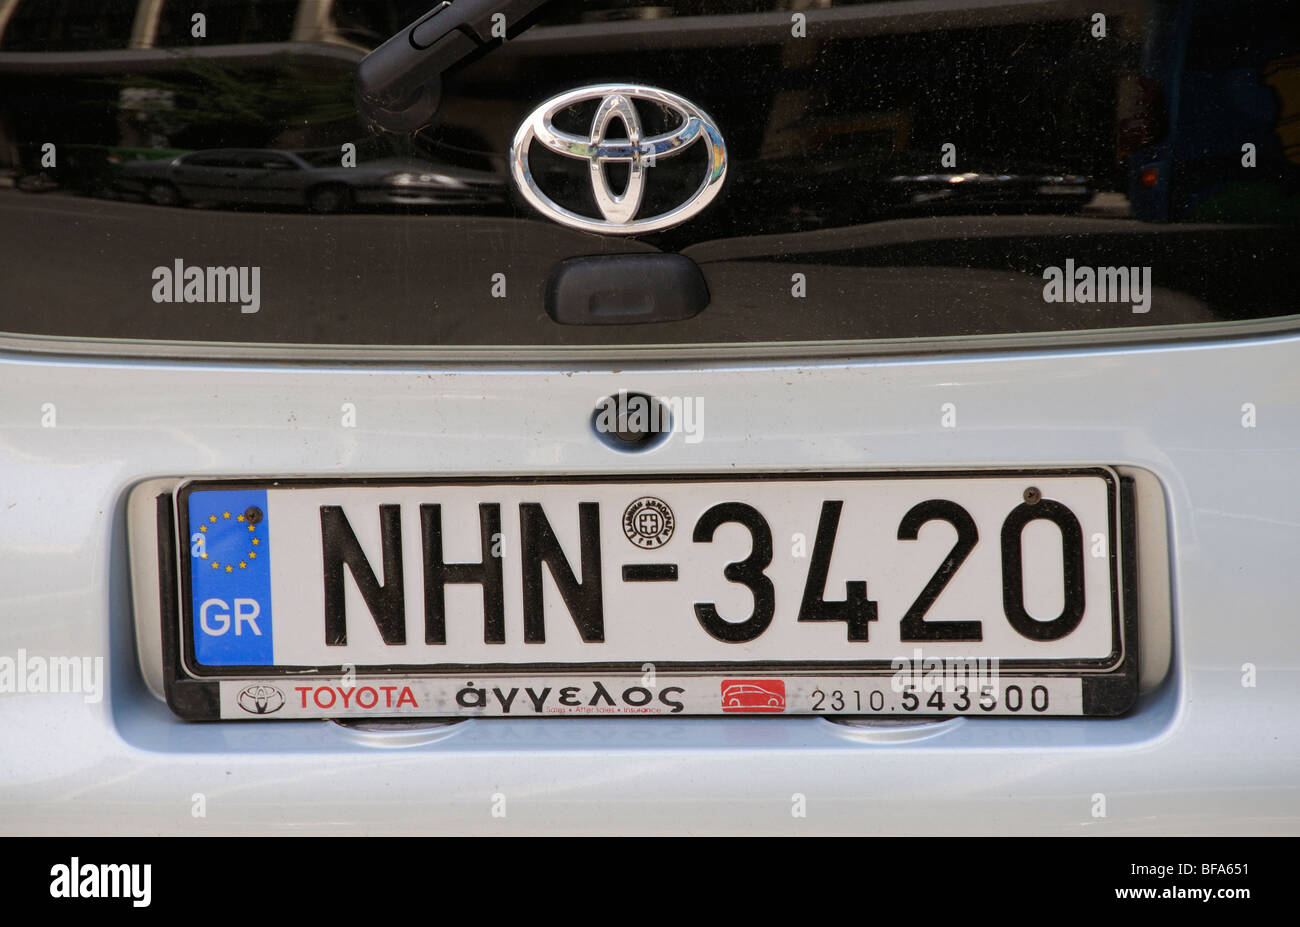 Vehicle registration plate on a Greek Toyota saloon car - Stock Image